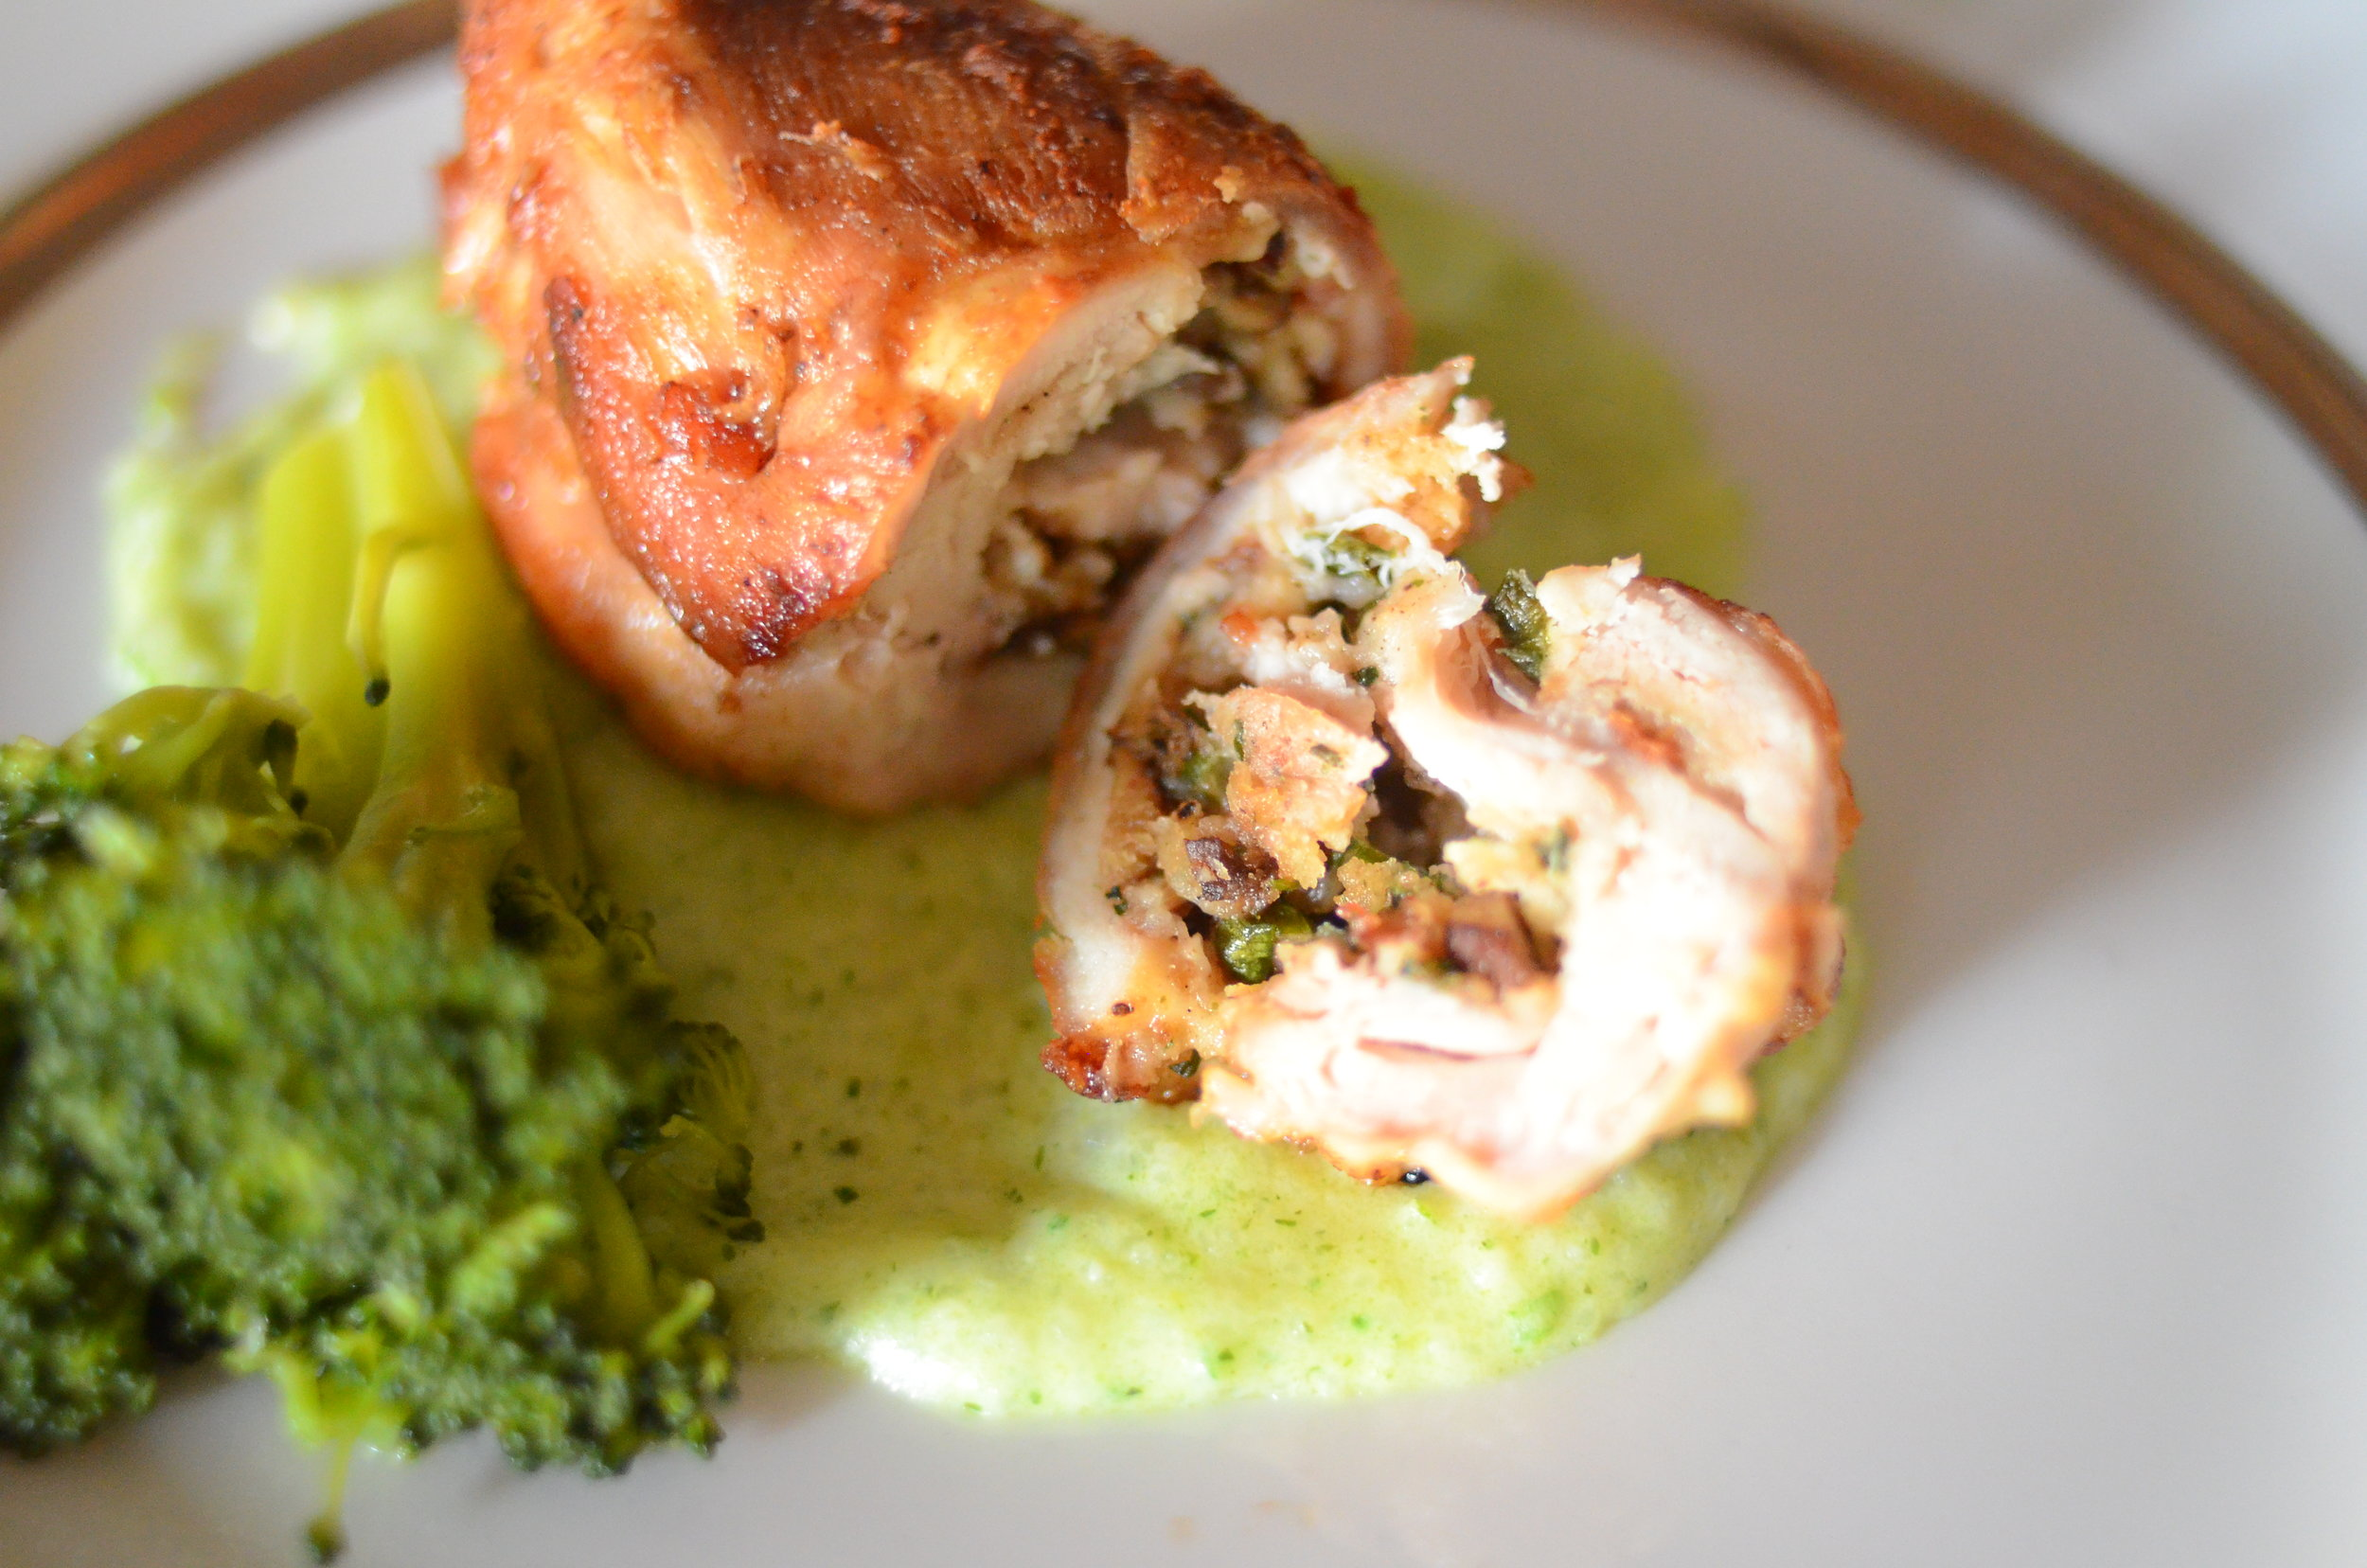 Chicken Roulade with Ricechamel